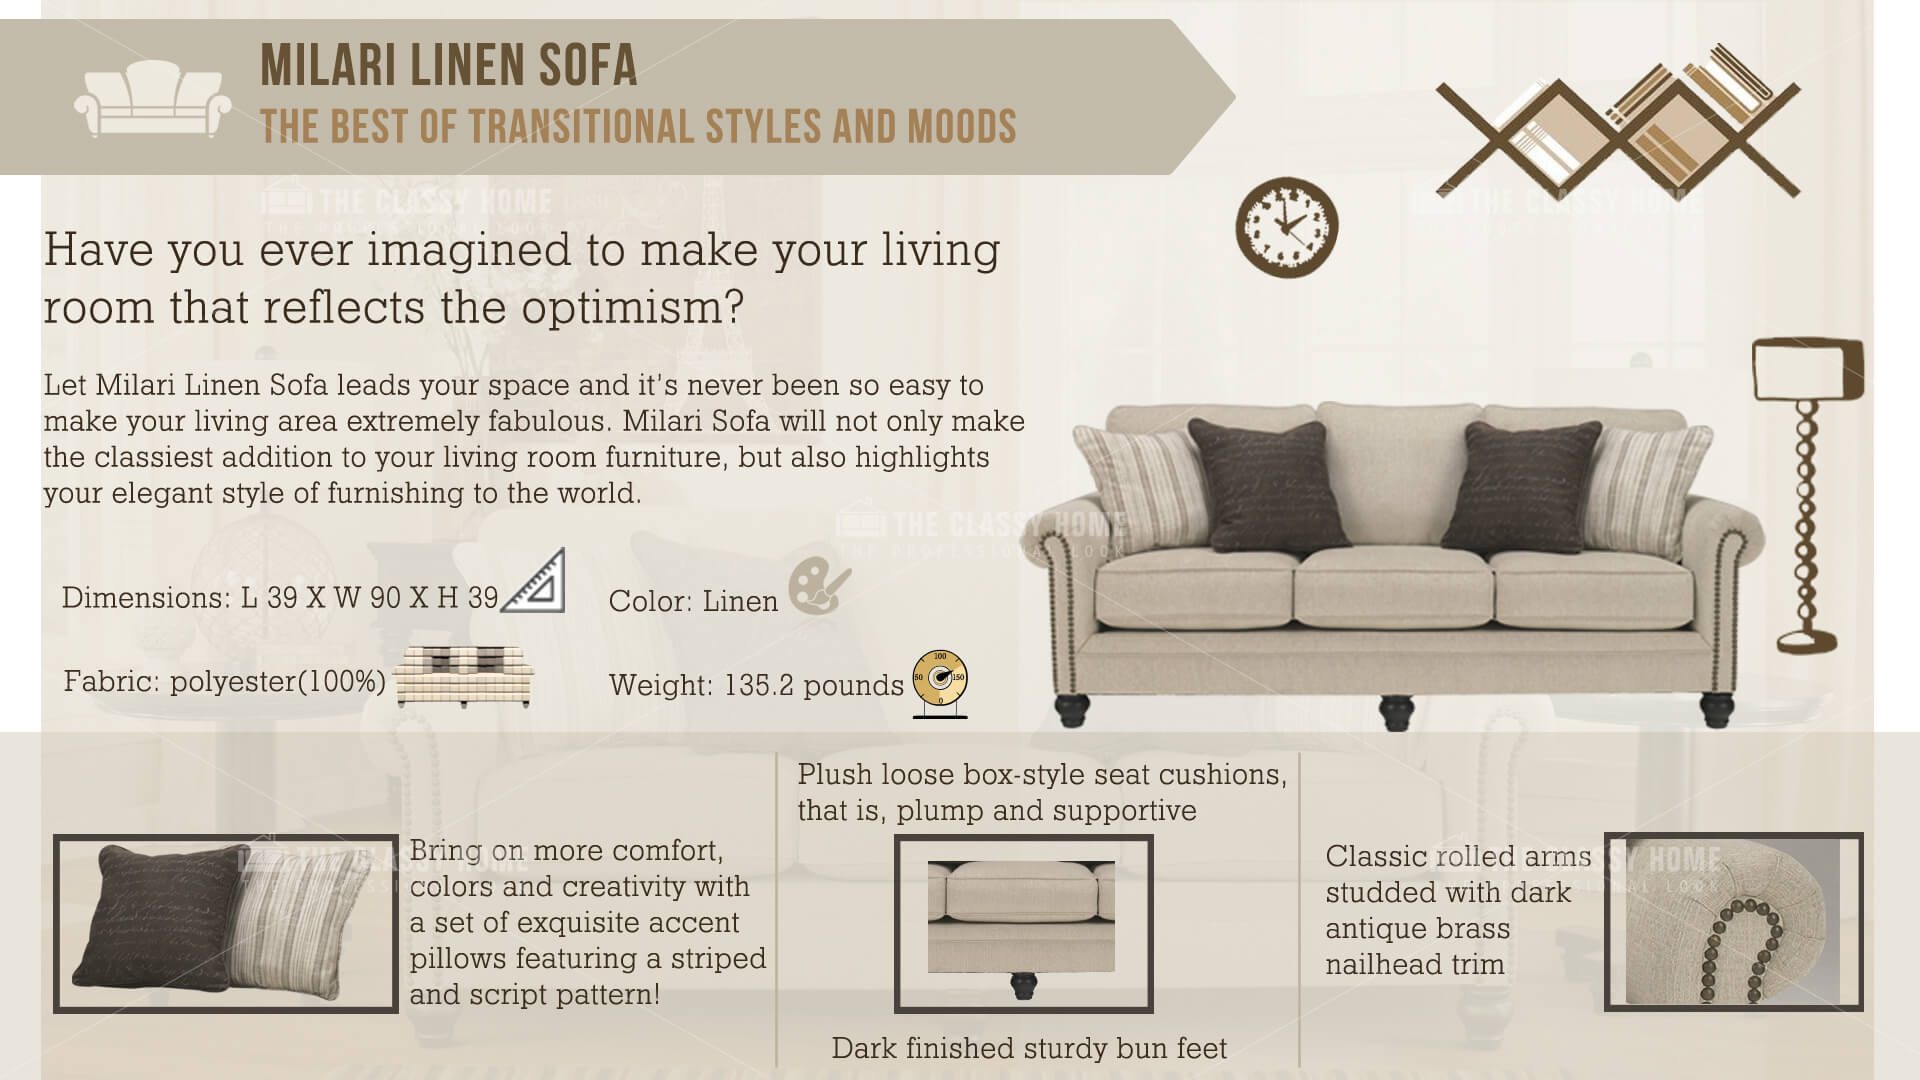 Ashley Furniture Milari Linen Sofa